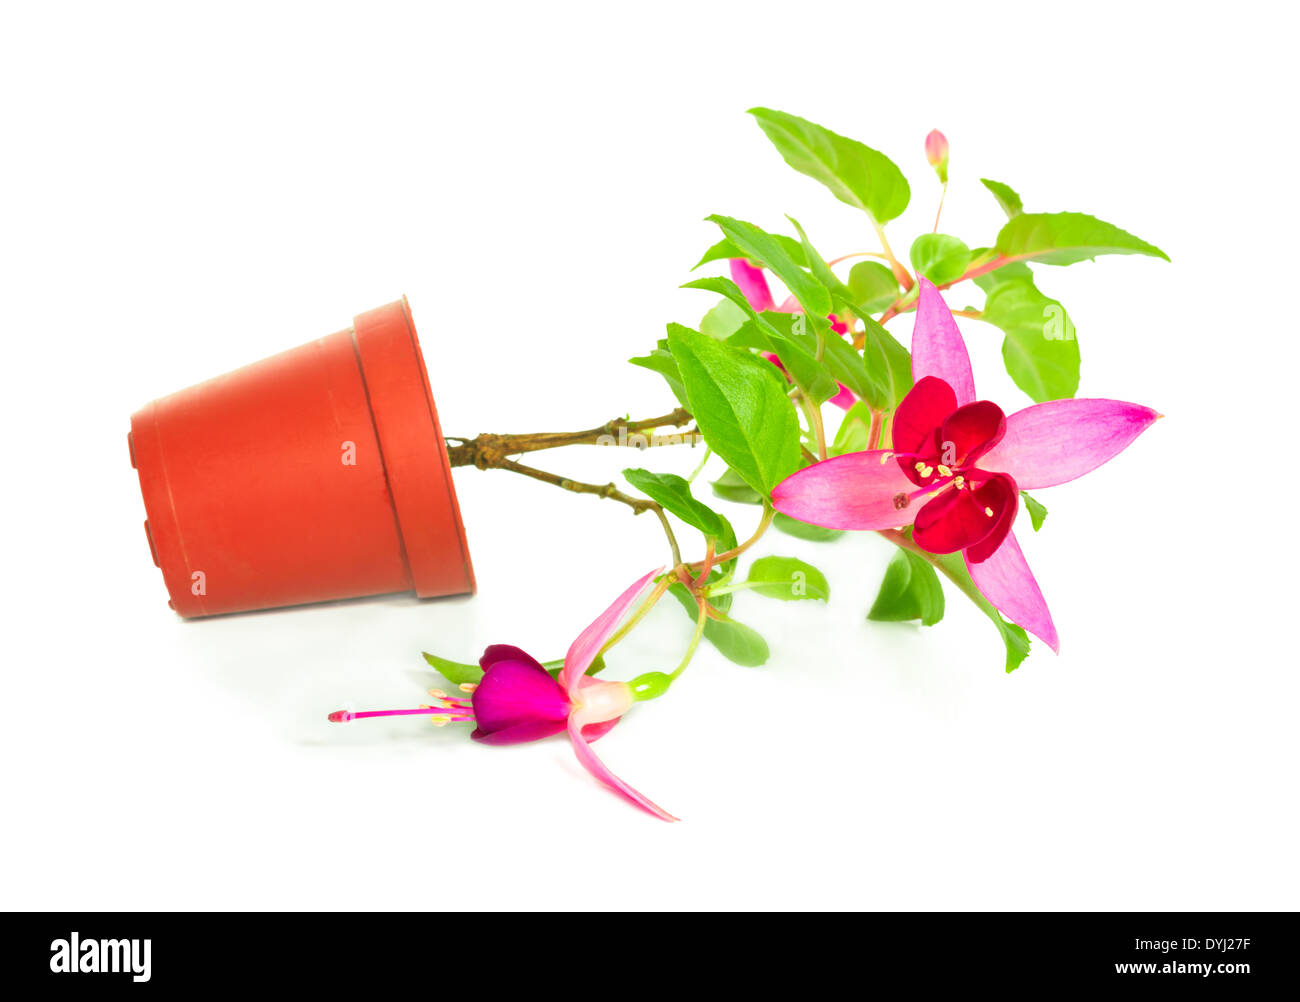 Houseplants Cut Out Stock Images Pictures Page 2 Alamy